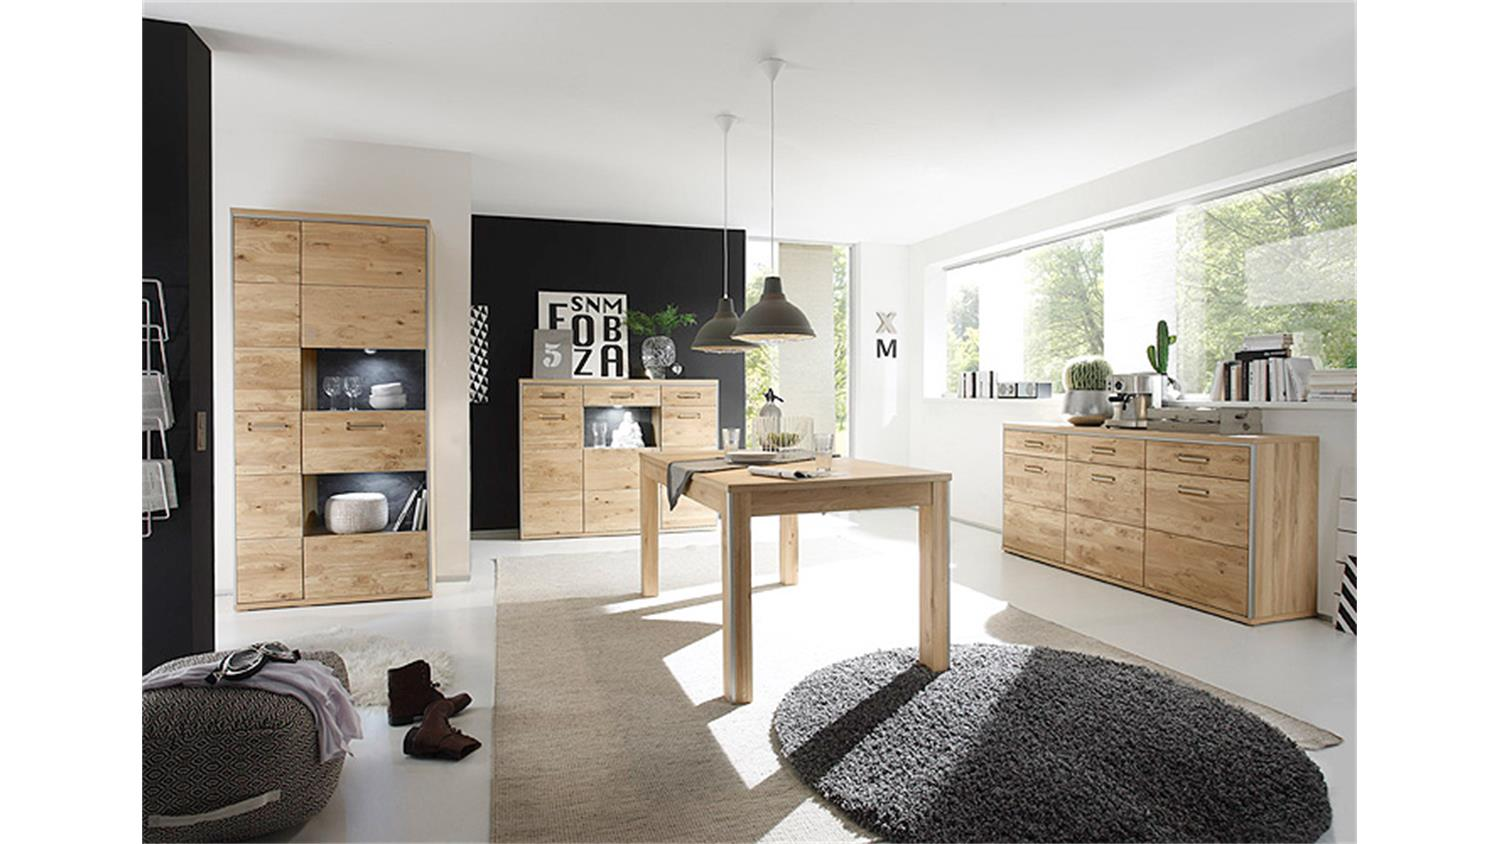 esstisch espero tisch ast eiche furniert ausziehbar 160 260. Black Bedroom Furniture Sets. Home Design Ideas